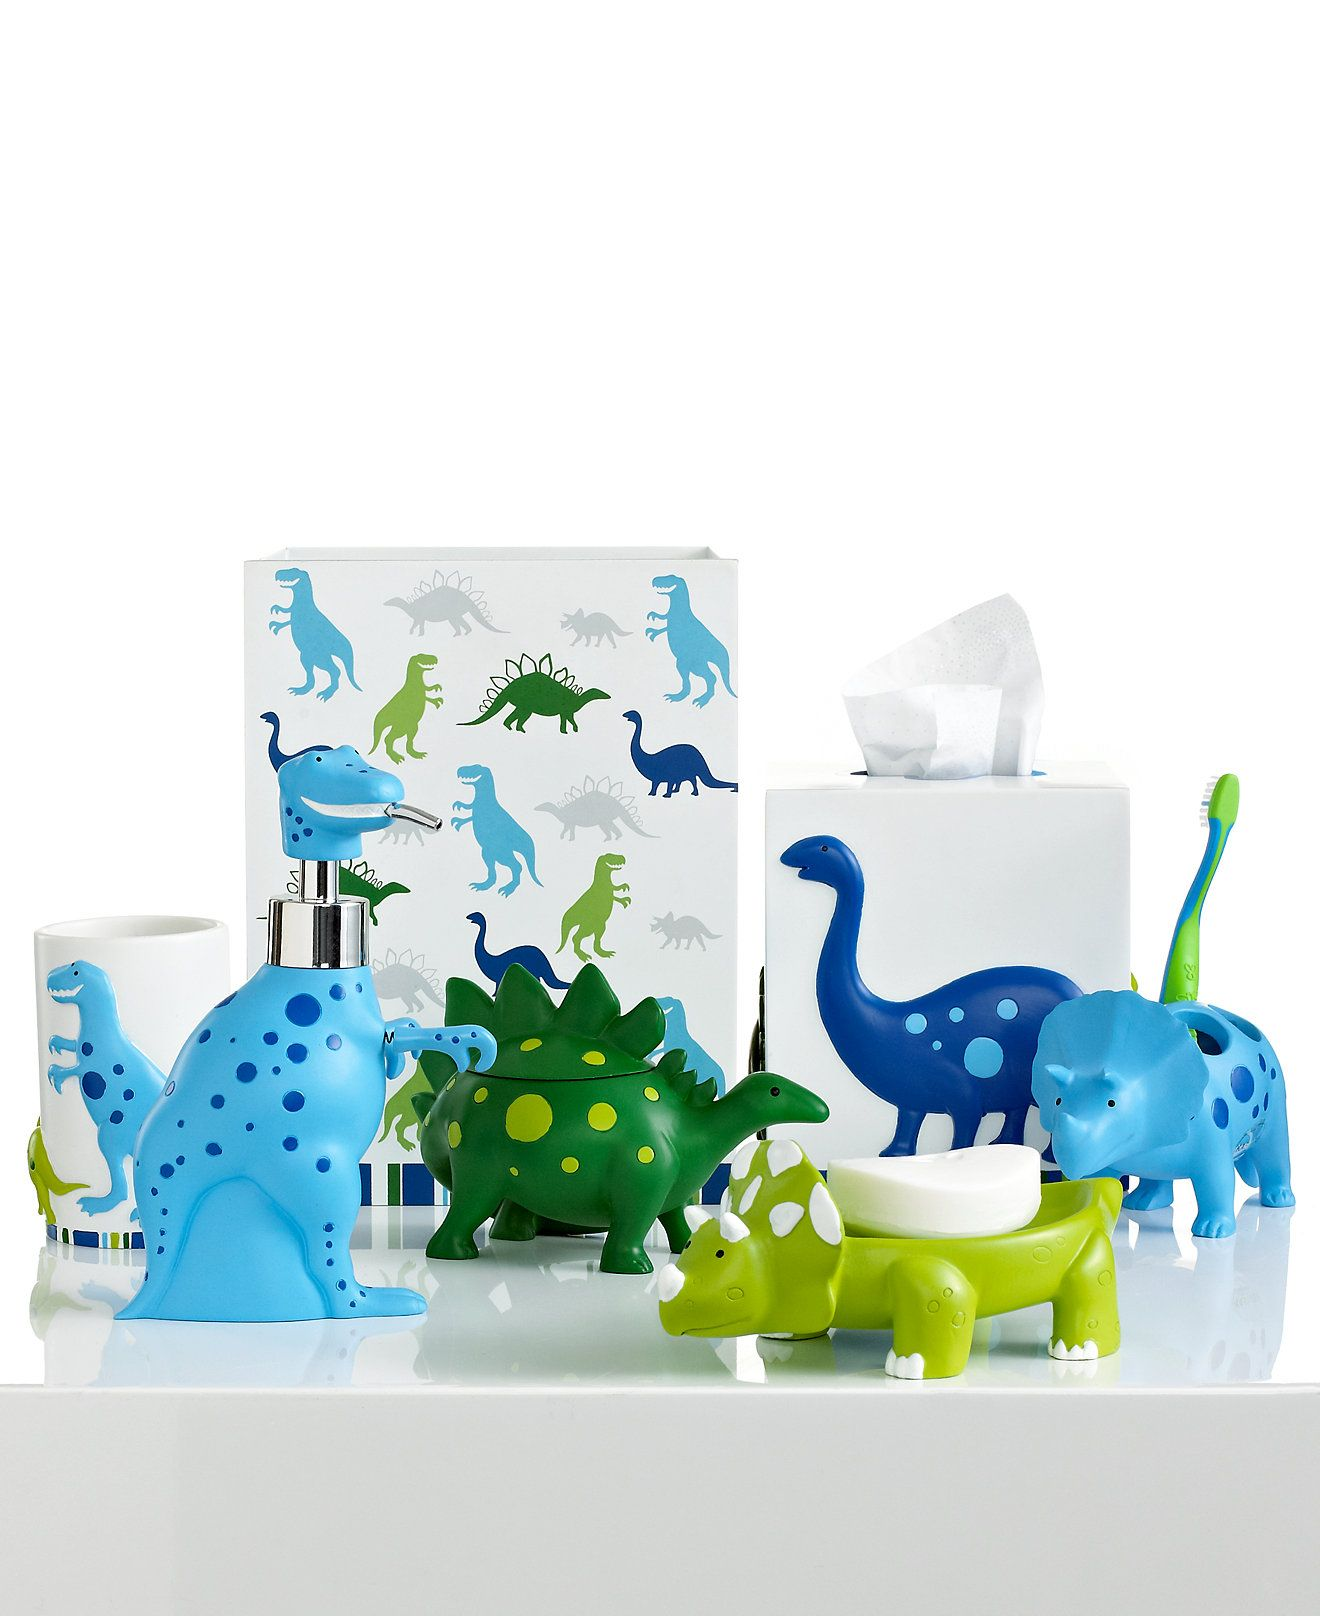 Bathroom Accessories Kids kassatex bath accessories, dino park collection - bathroom